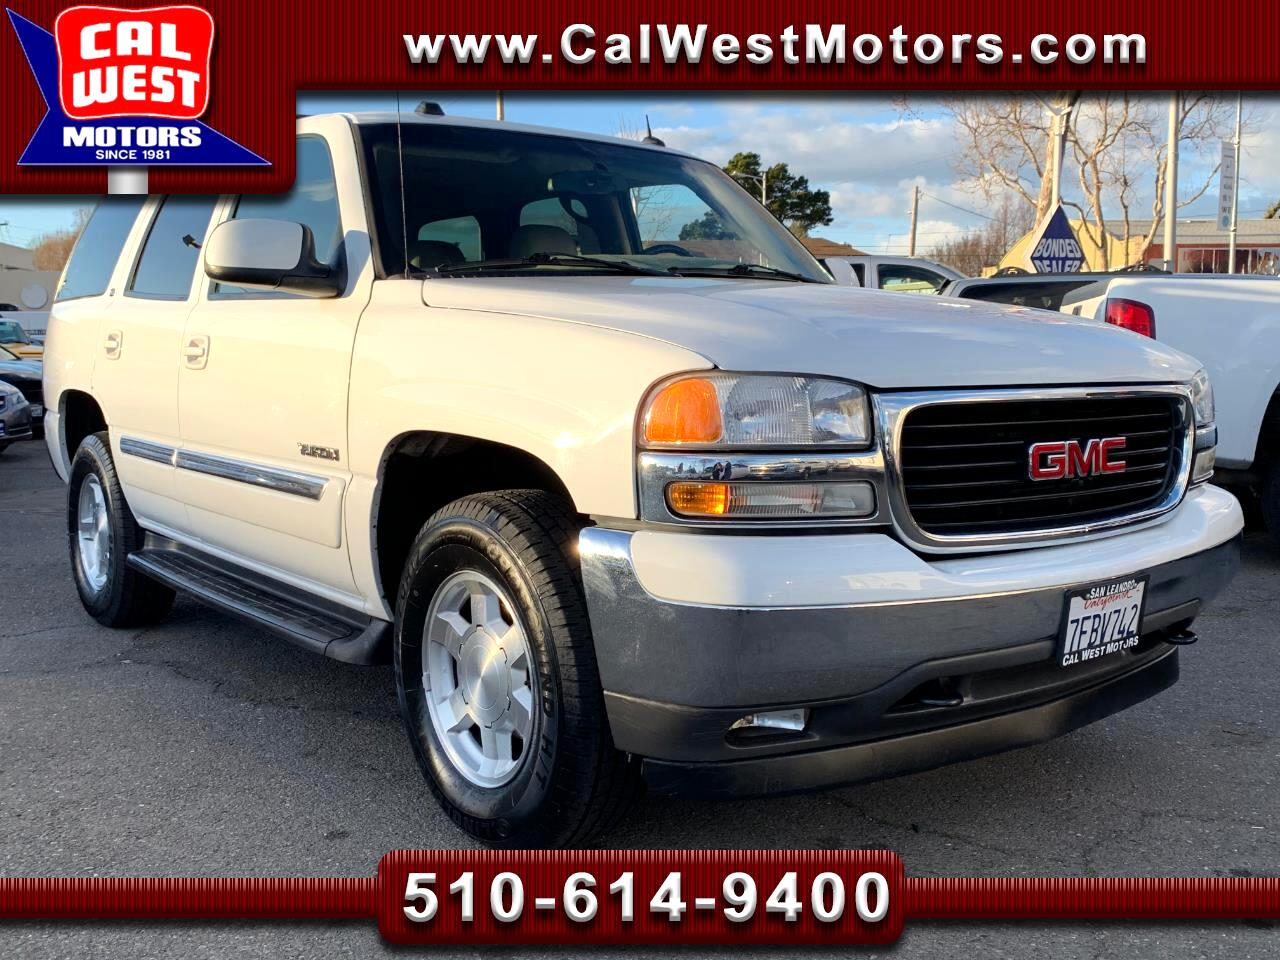 2005 GMC Yukon 4X4 3Rows Leather BOSE MnRoof VeryClean ExMtnce